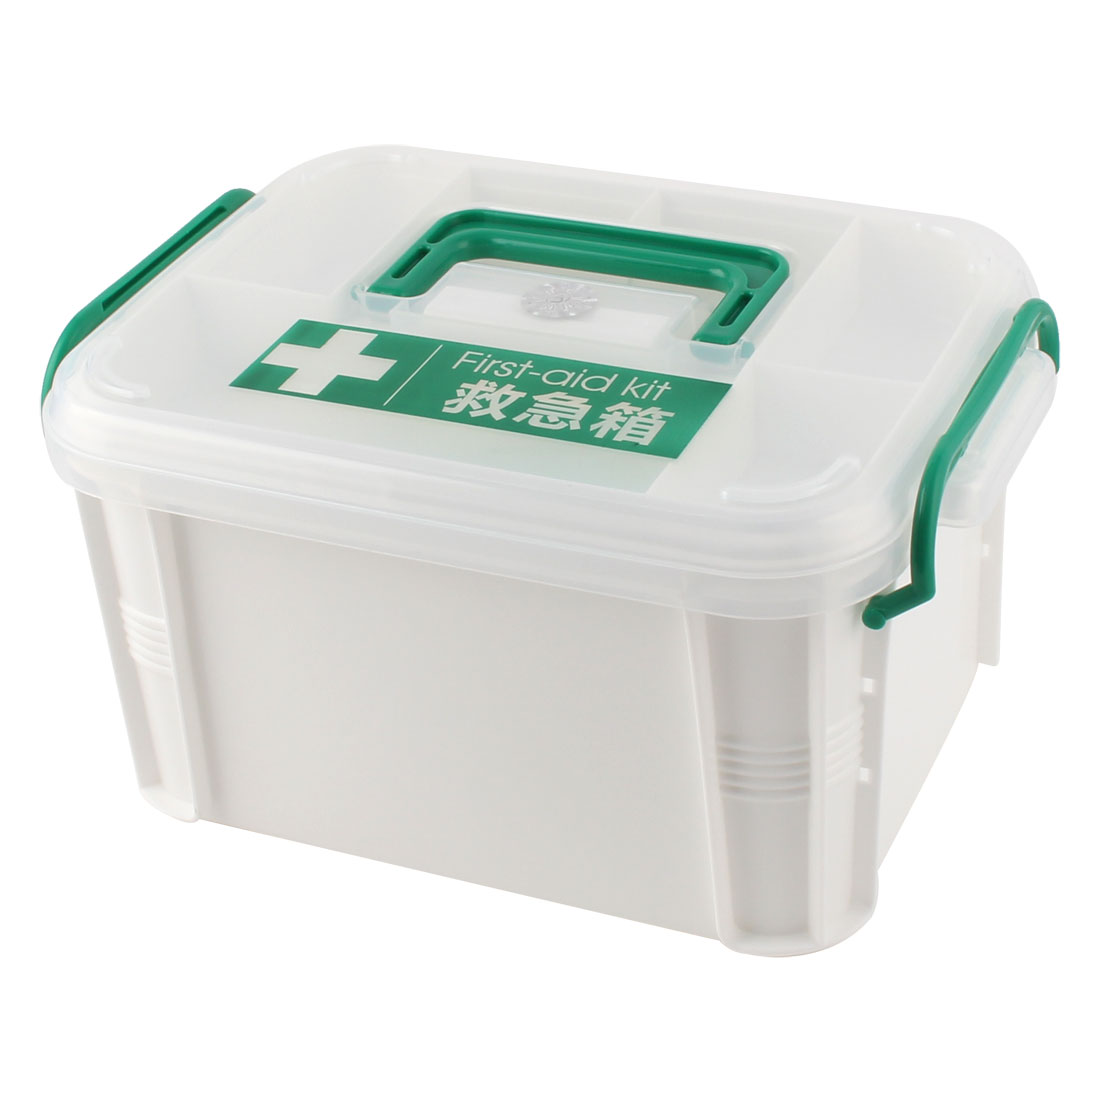 Portable Handheld Family Medicine Pill First Aid Kit Storage Box Case Organizer